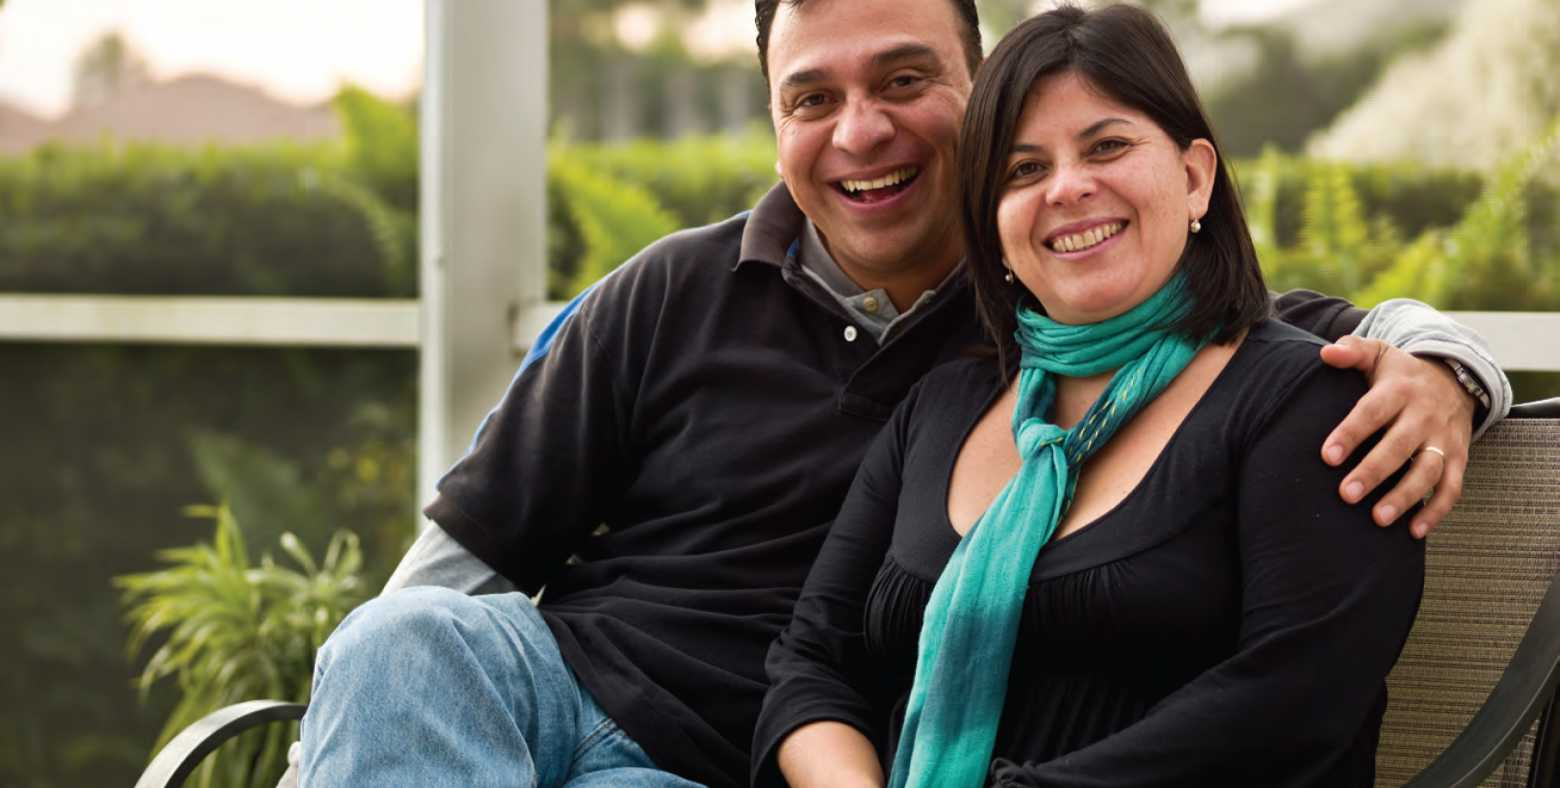 smiling couple sitting together